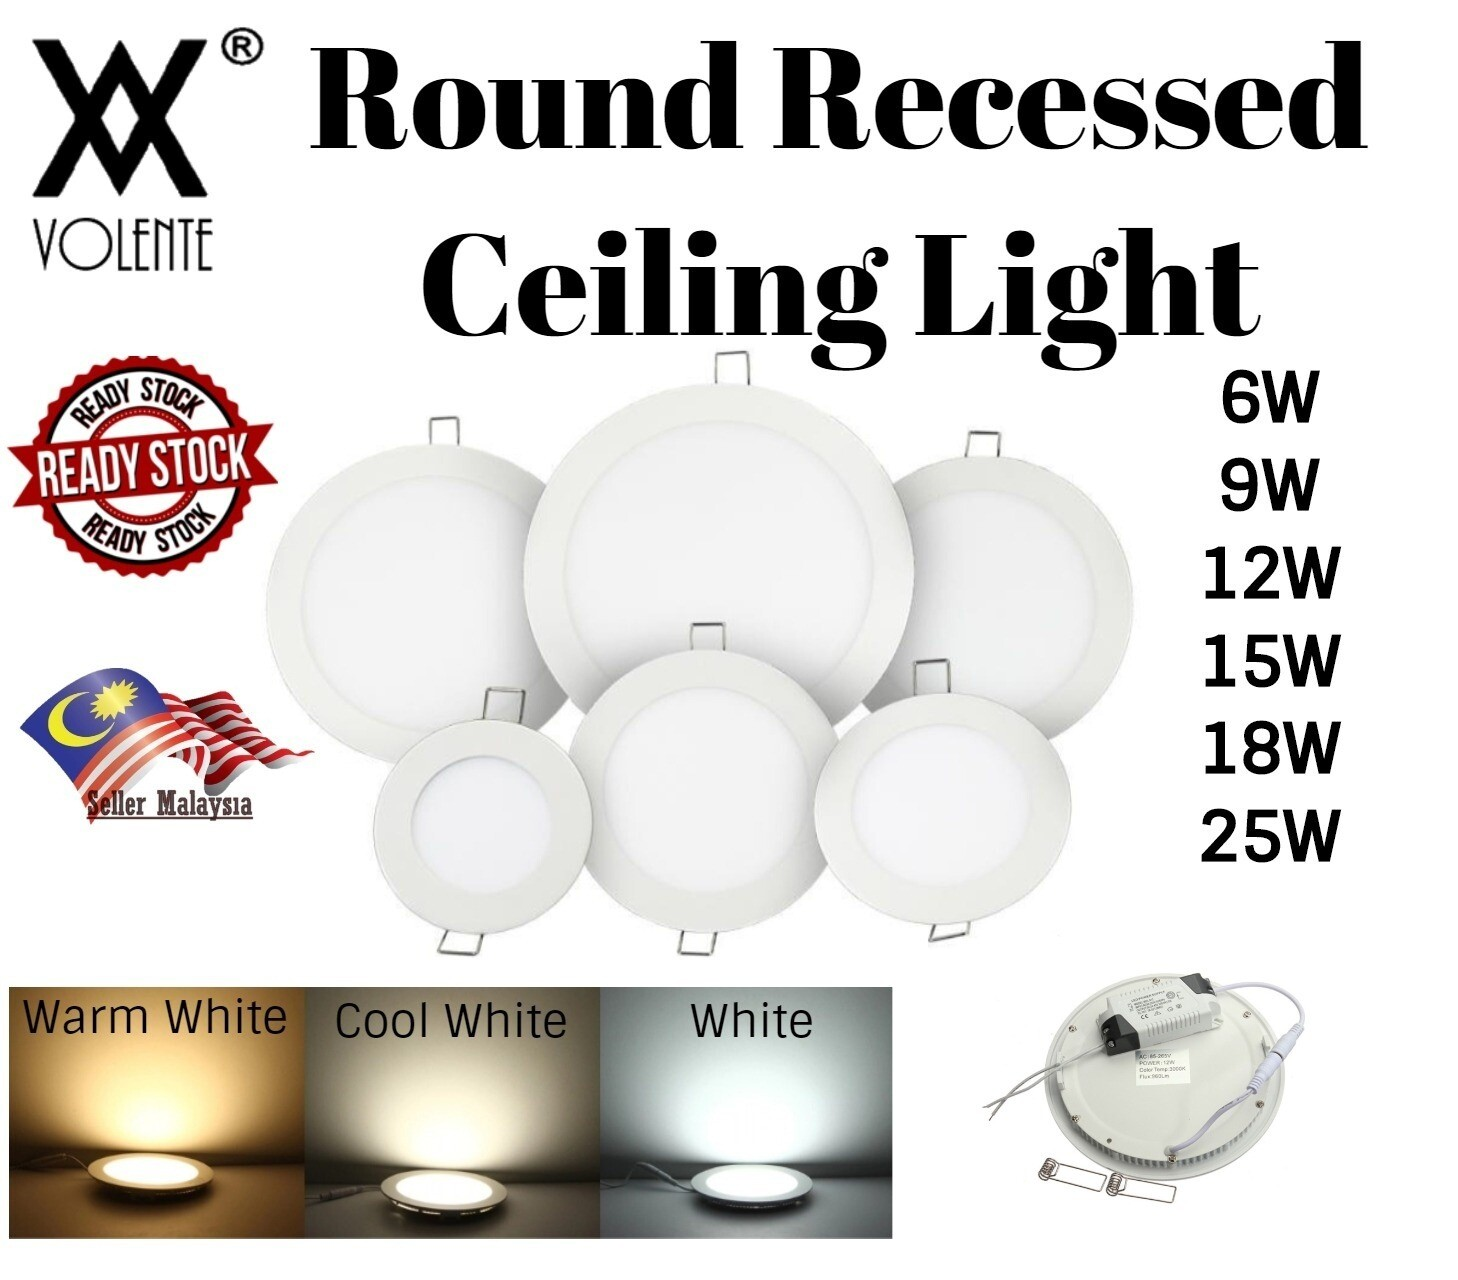 Round LED Panel Light White / Warm White / Cool White 6W 9W 12W 15W 18W 25W Recessed Ceiling Lamp Ultra Thin